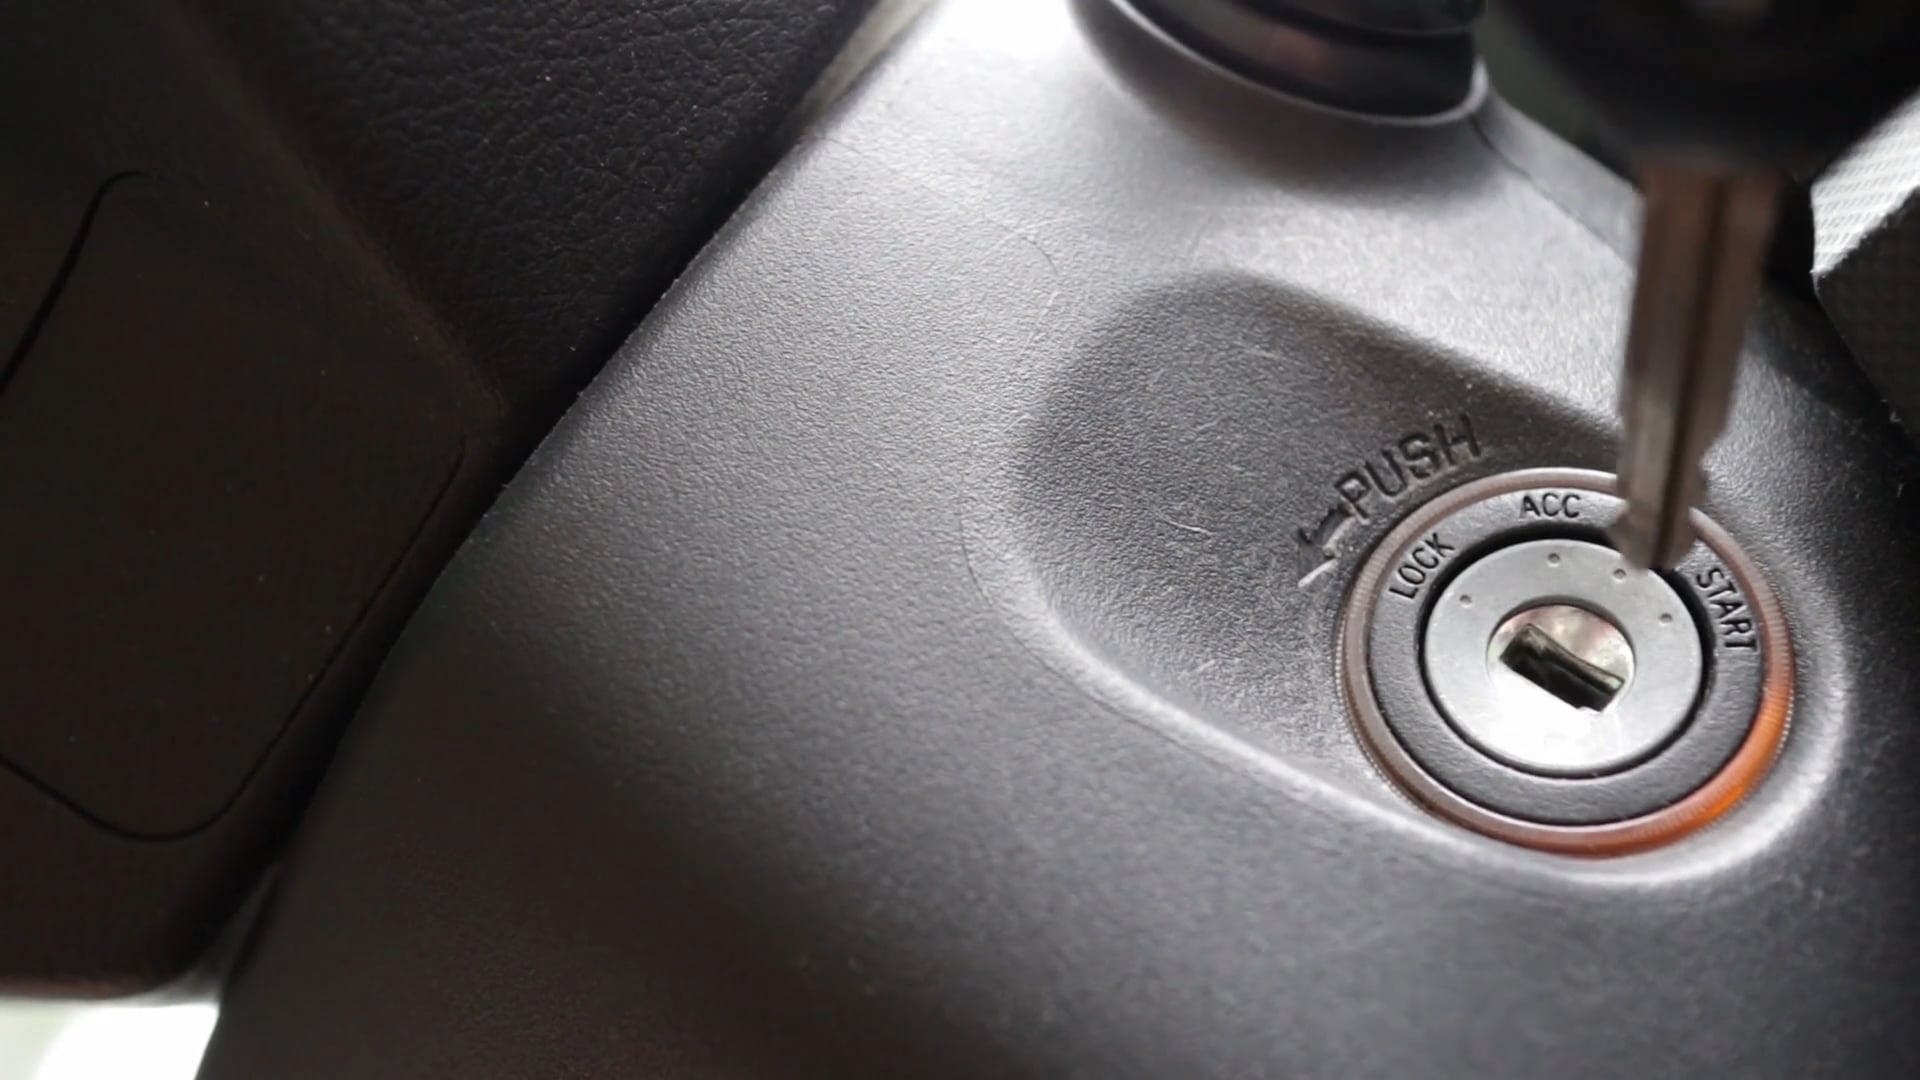 Car Key In Close-Up View